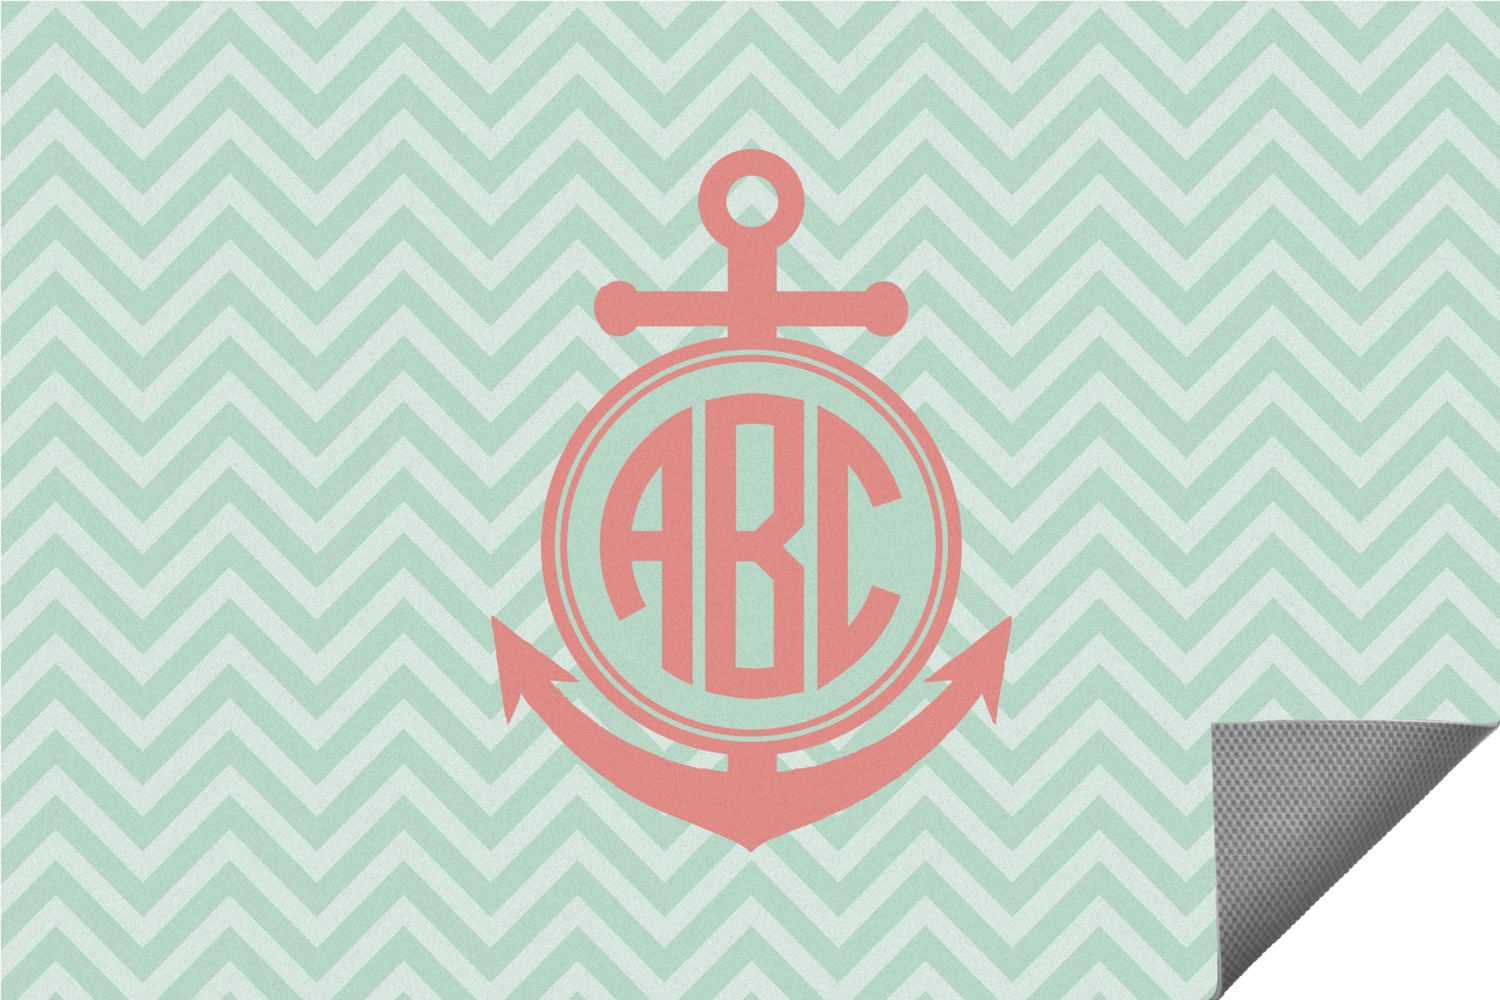 Chevron & Anchor Indoor / Outdoor Rug (Personalized) - YouCustomizeIt